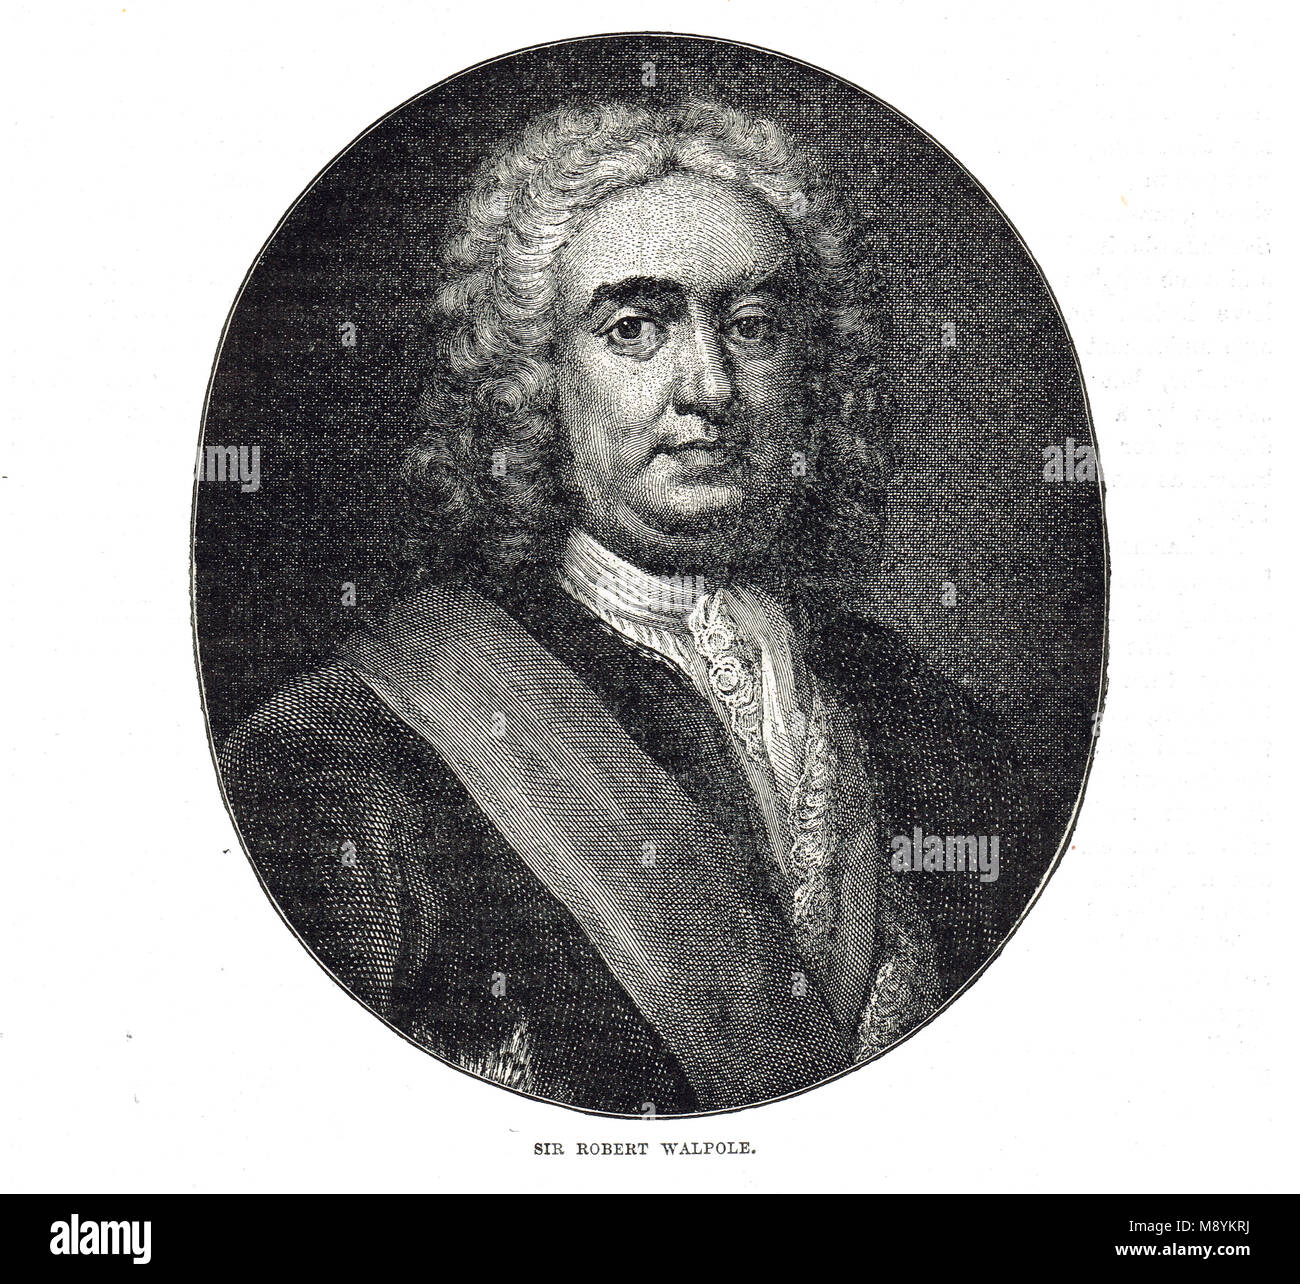 Robert Walpole, 1st Earl of Orford, considered the first Prime Minister of Great Britain - Stock Image